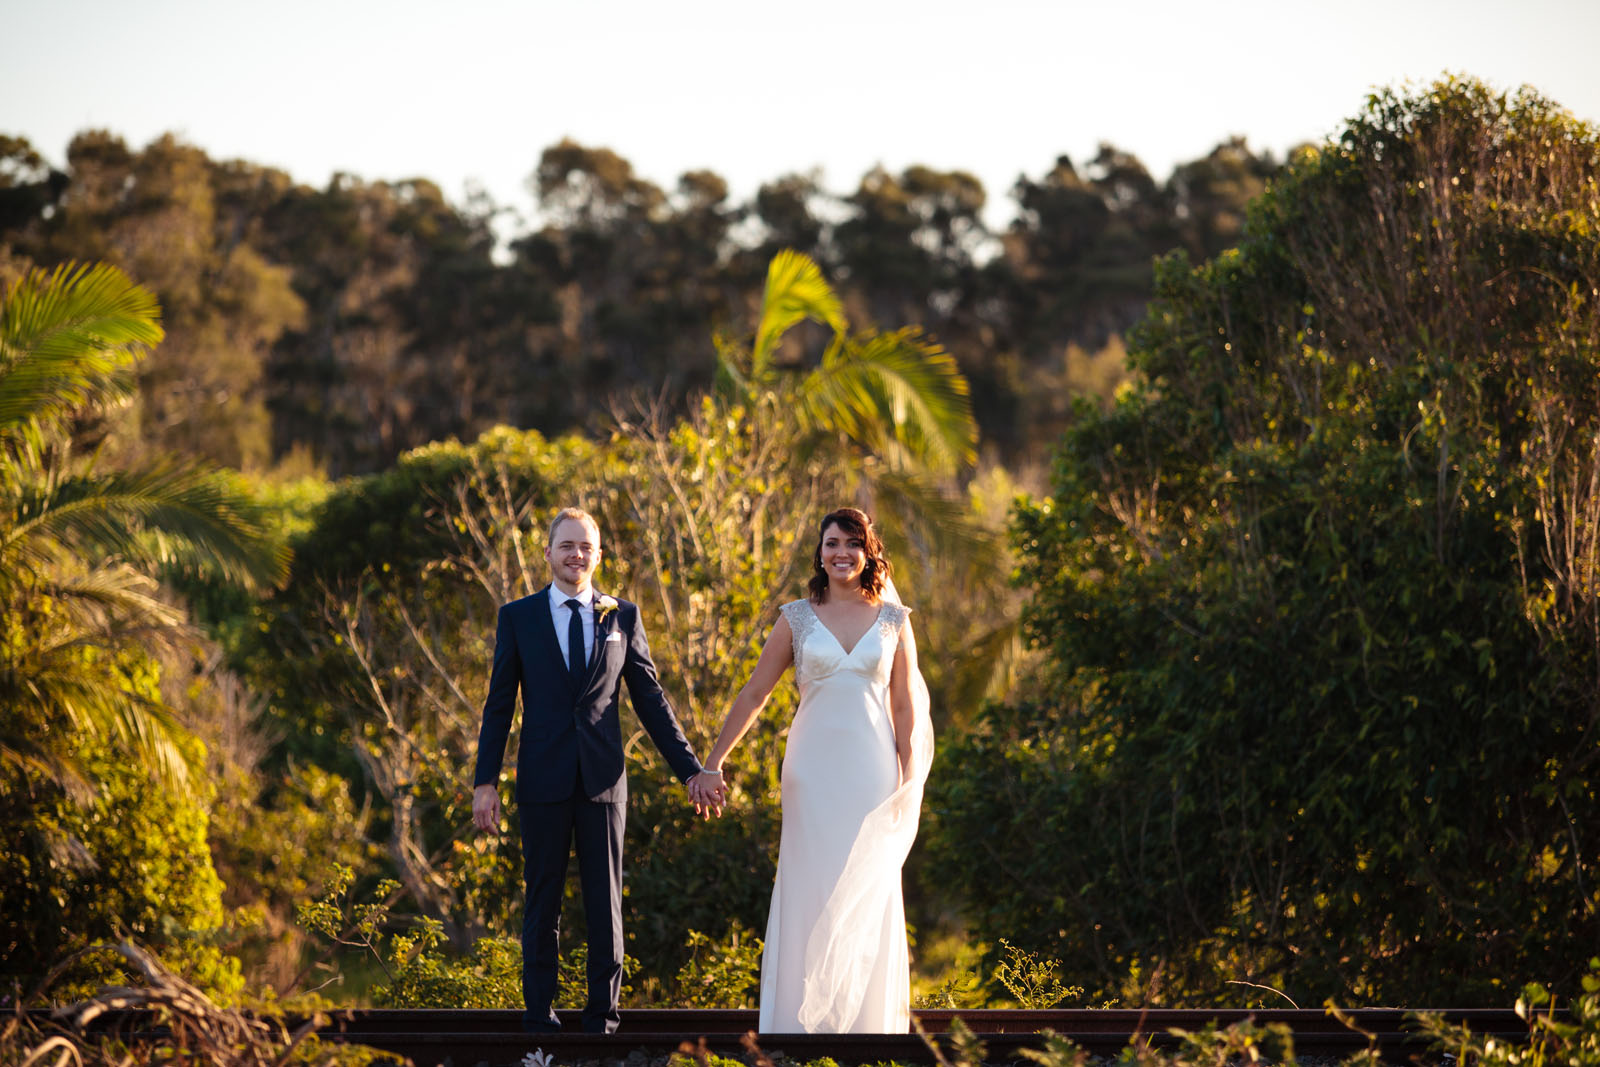 byron_bay_wedding_photogrpaher_556